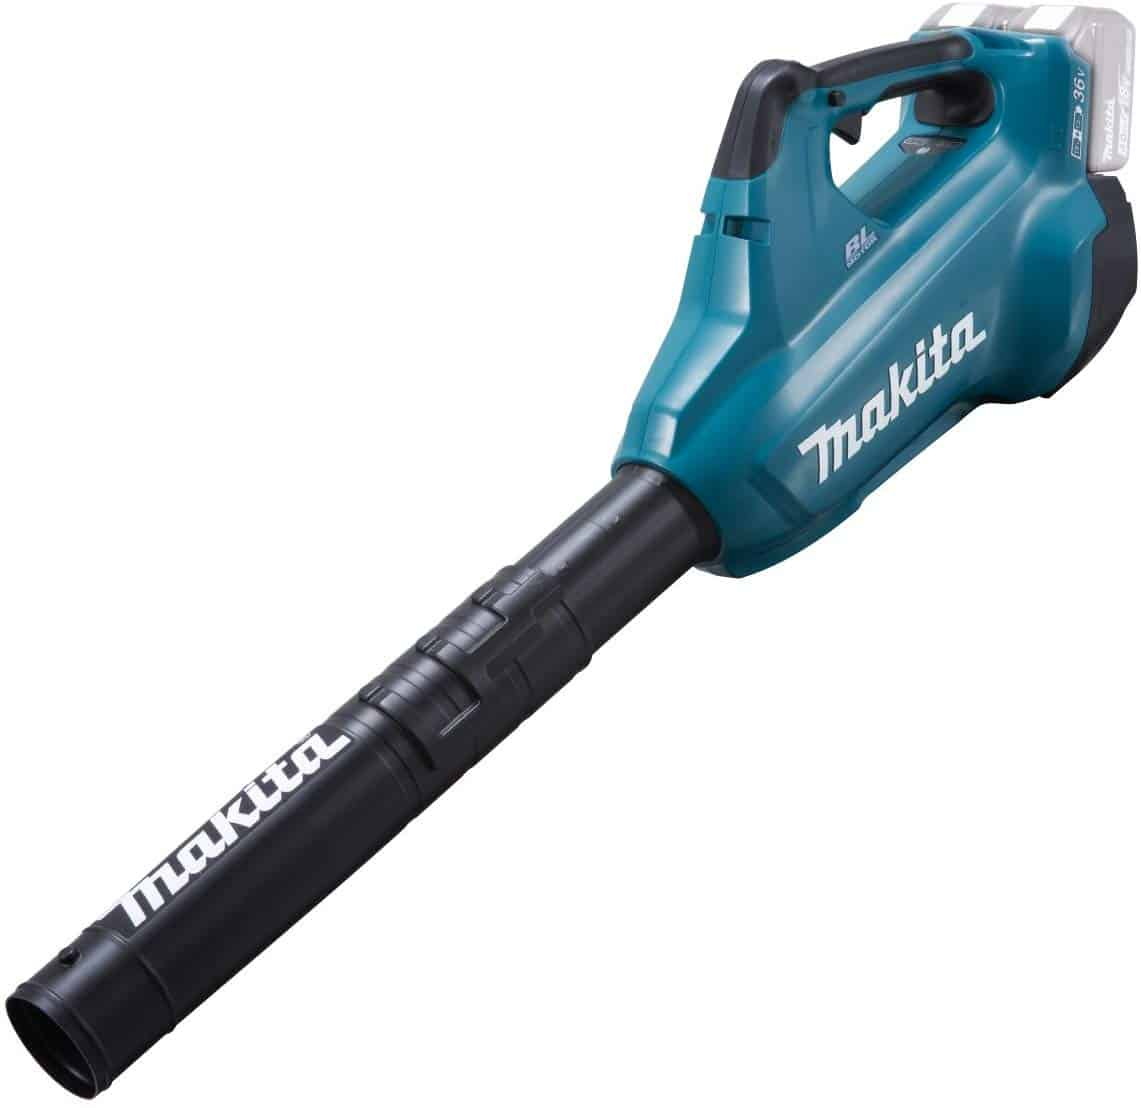 Makita DUB362Z Brushless Blower Review